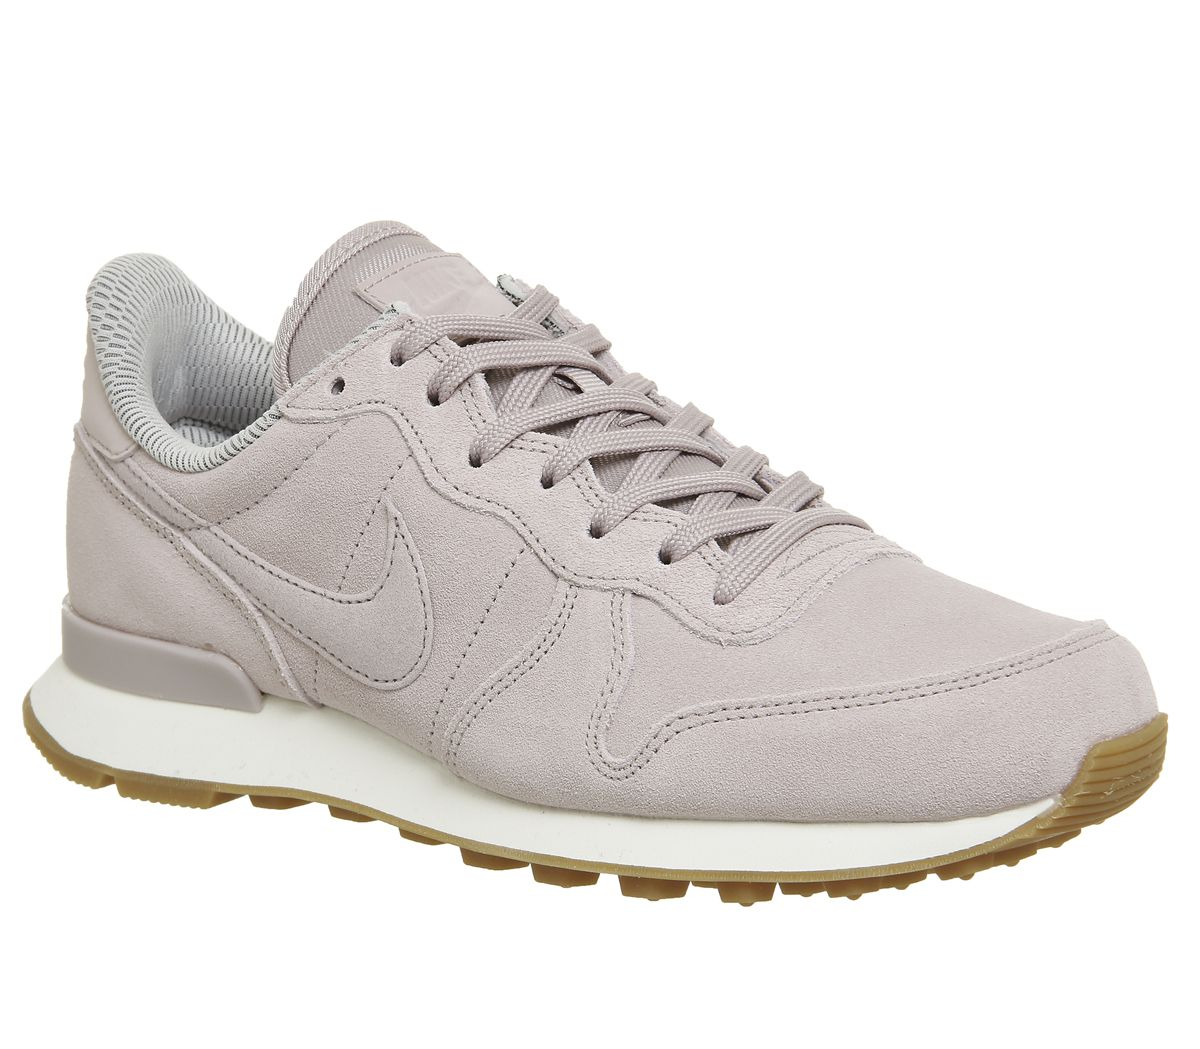 new concept 2d6dc 55f27 Nike Nike Internationalist Trainers Particle Rose - Hers trainers